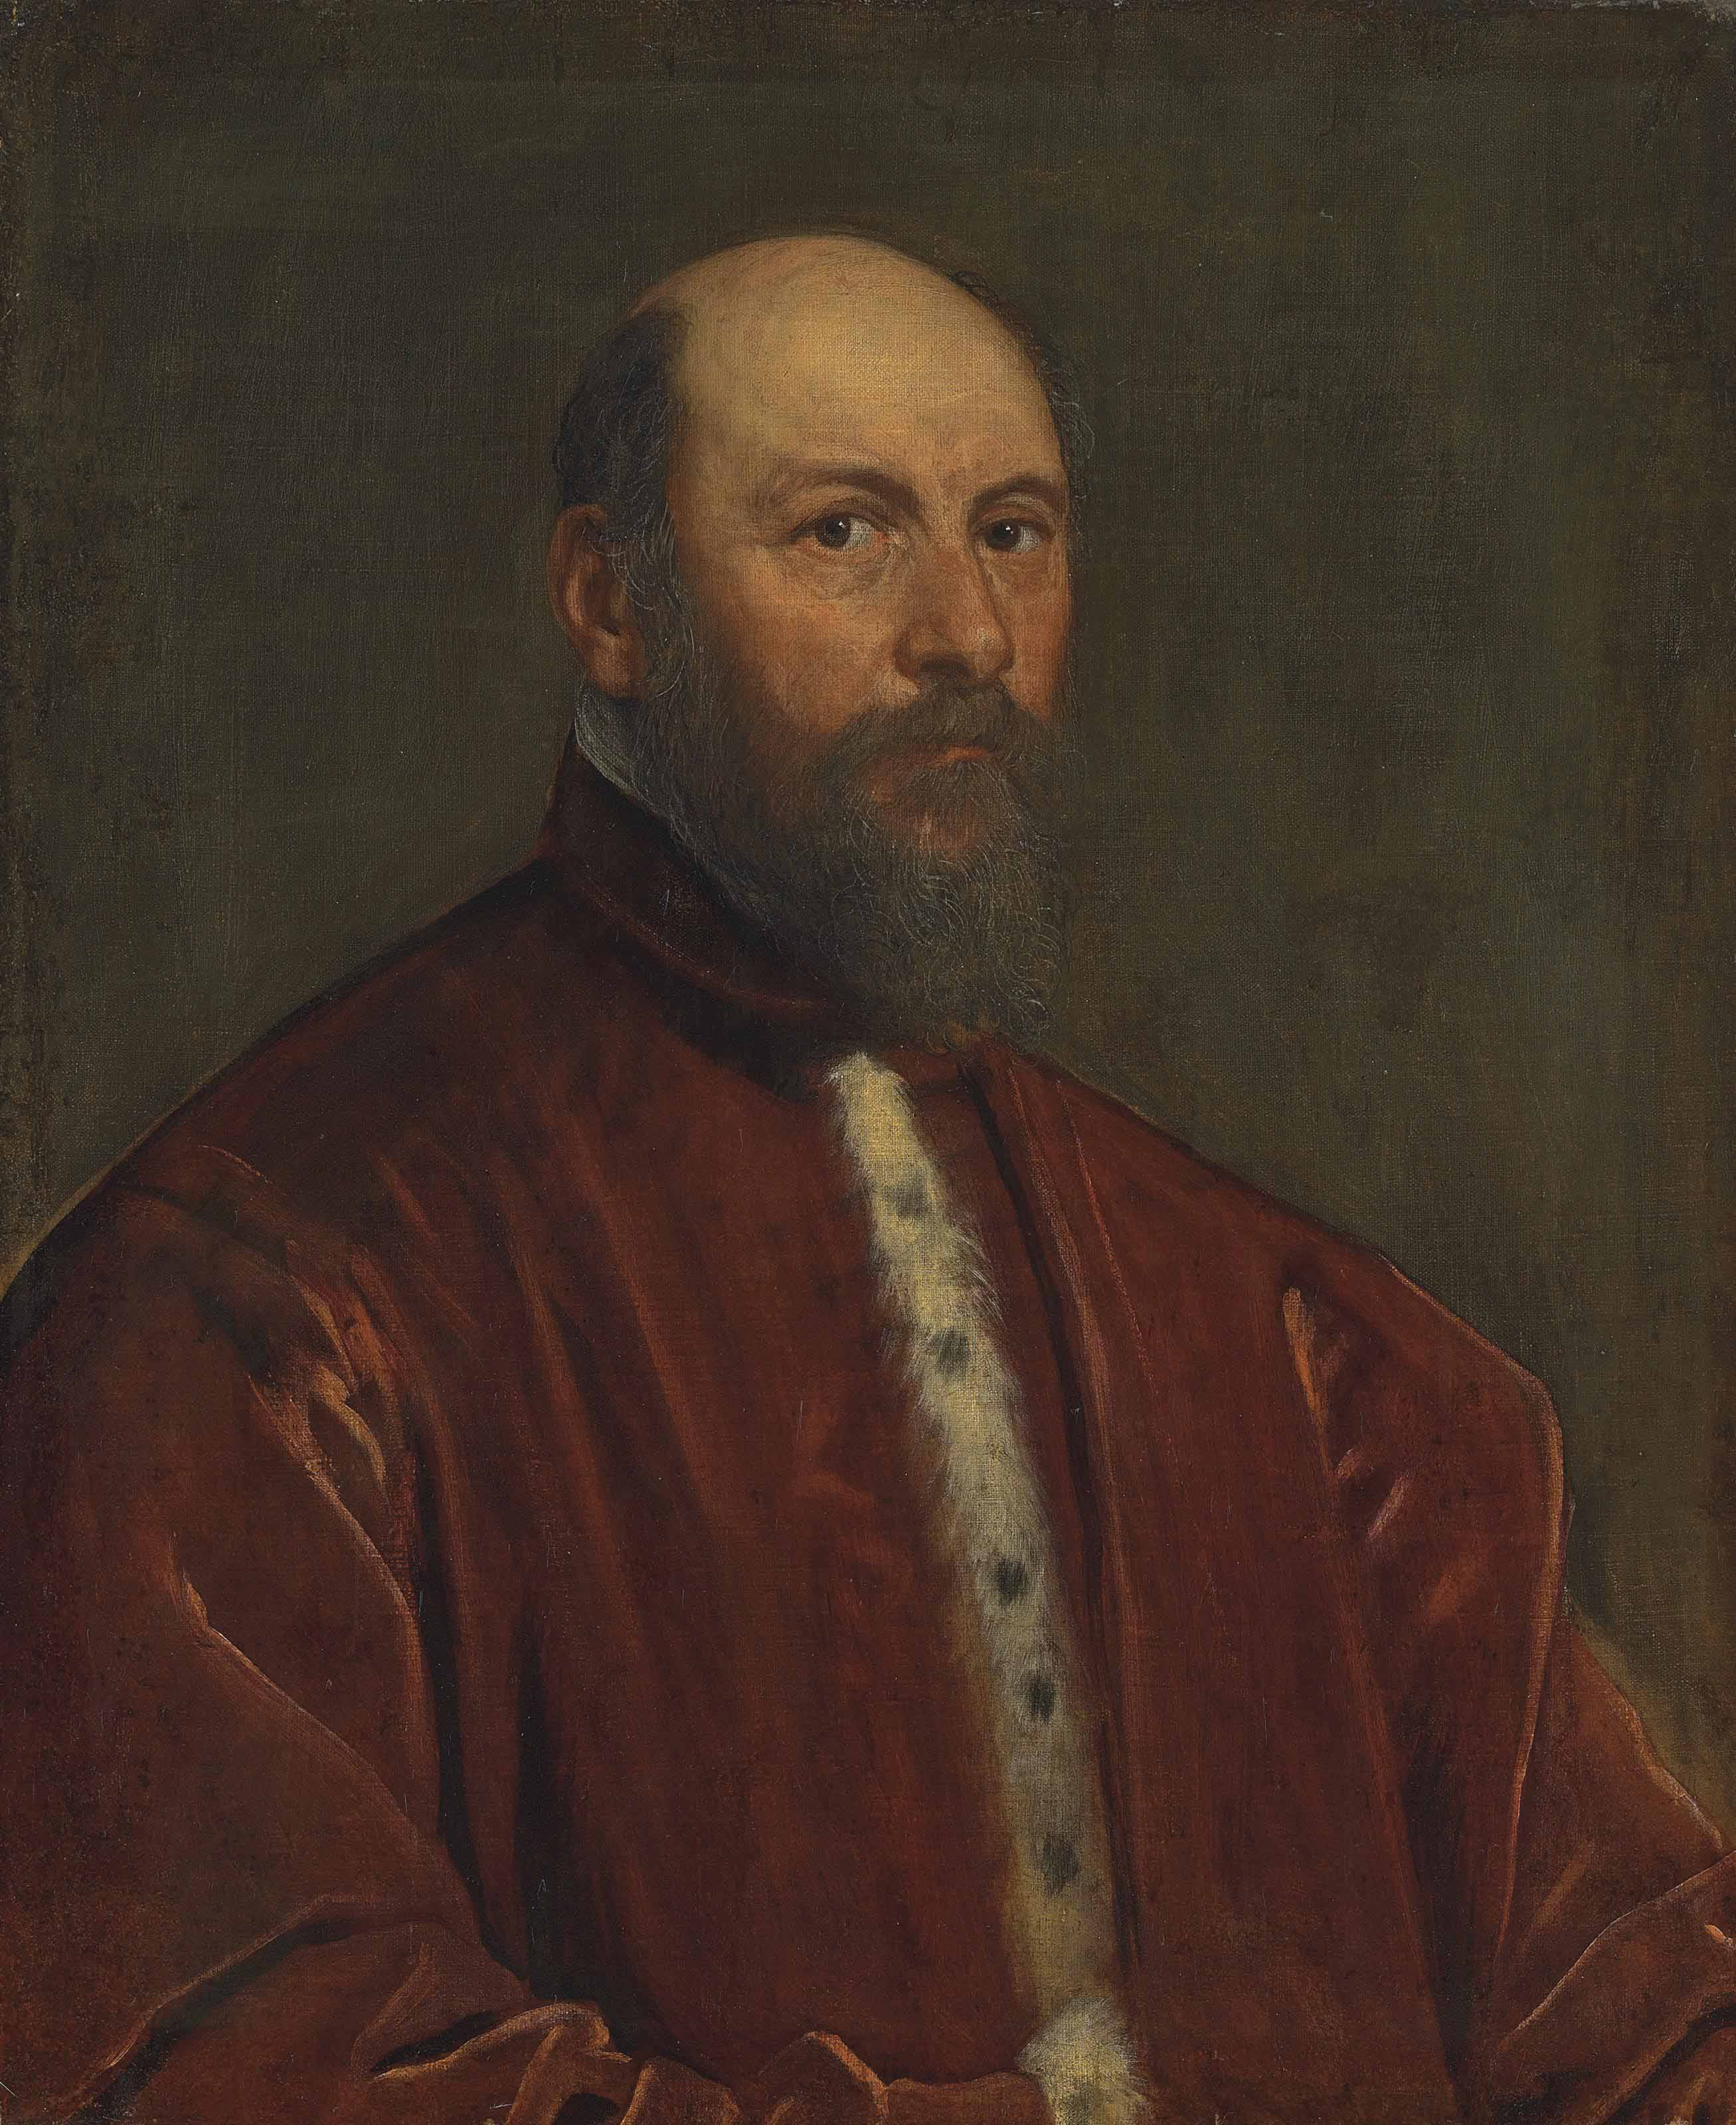 Portrait of a Venetian Senator, half-length, in red ermine-lined robes